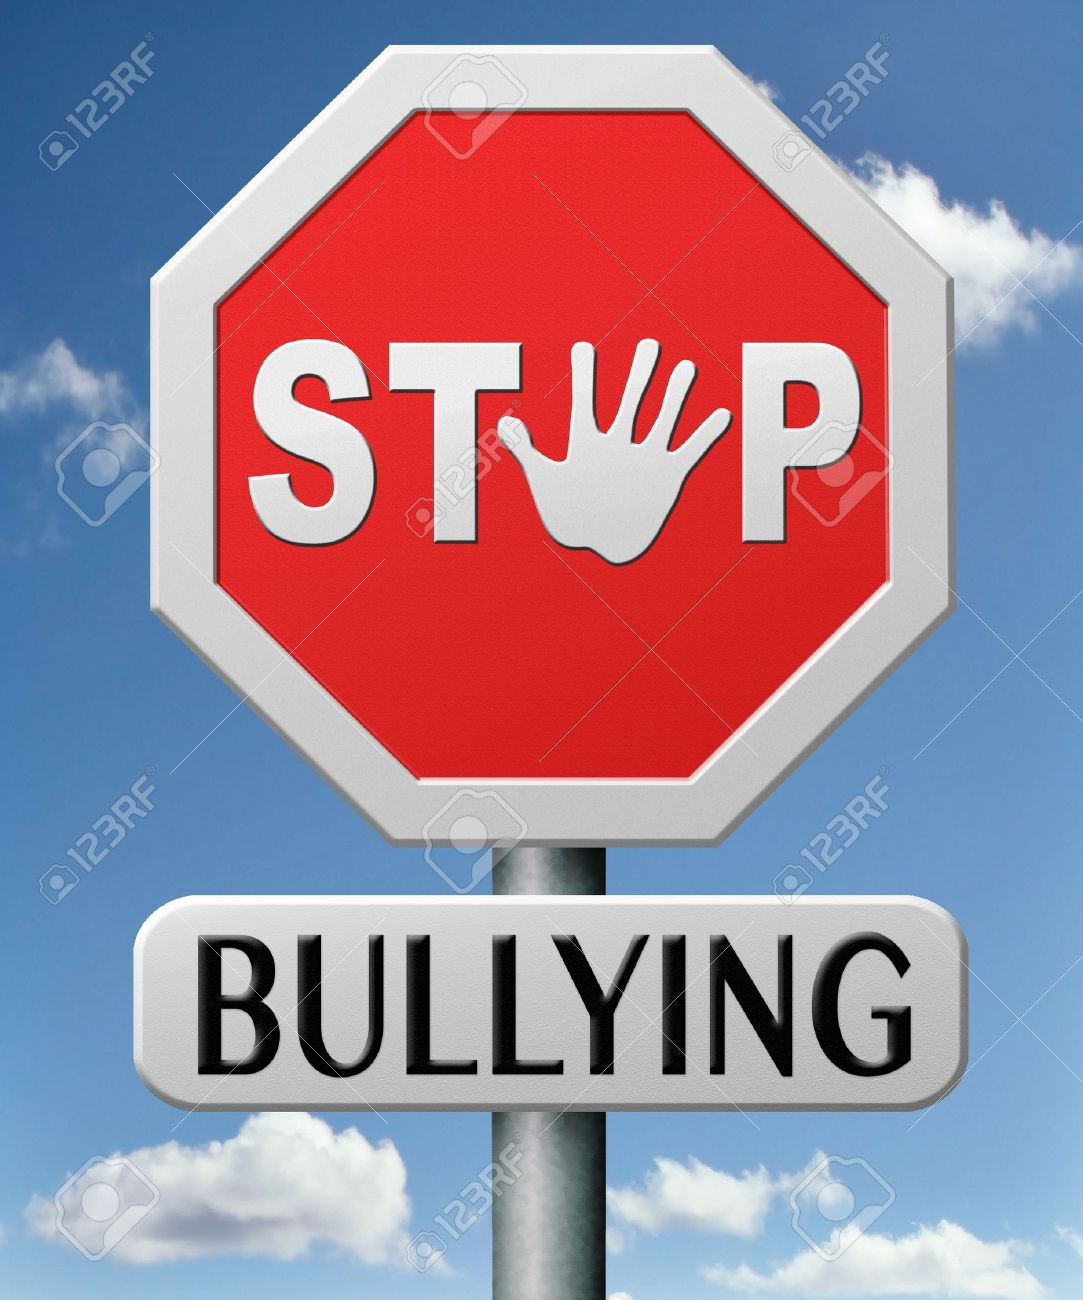 Stop Bullying At School Or At Work Stopping An Online Internet ...